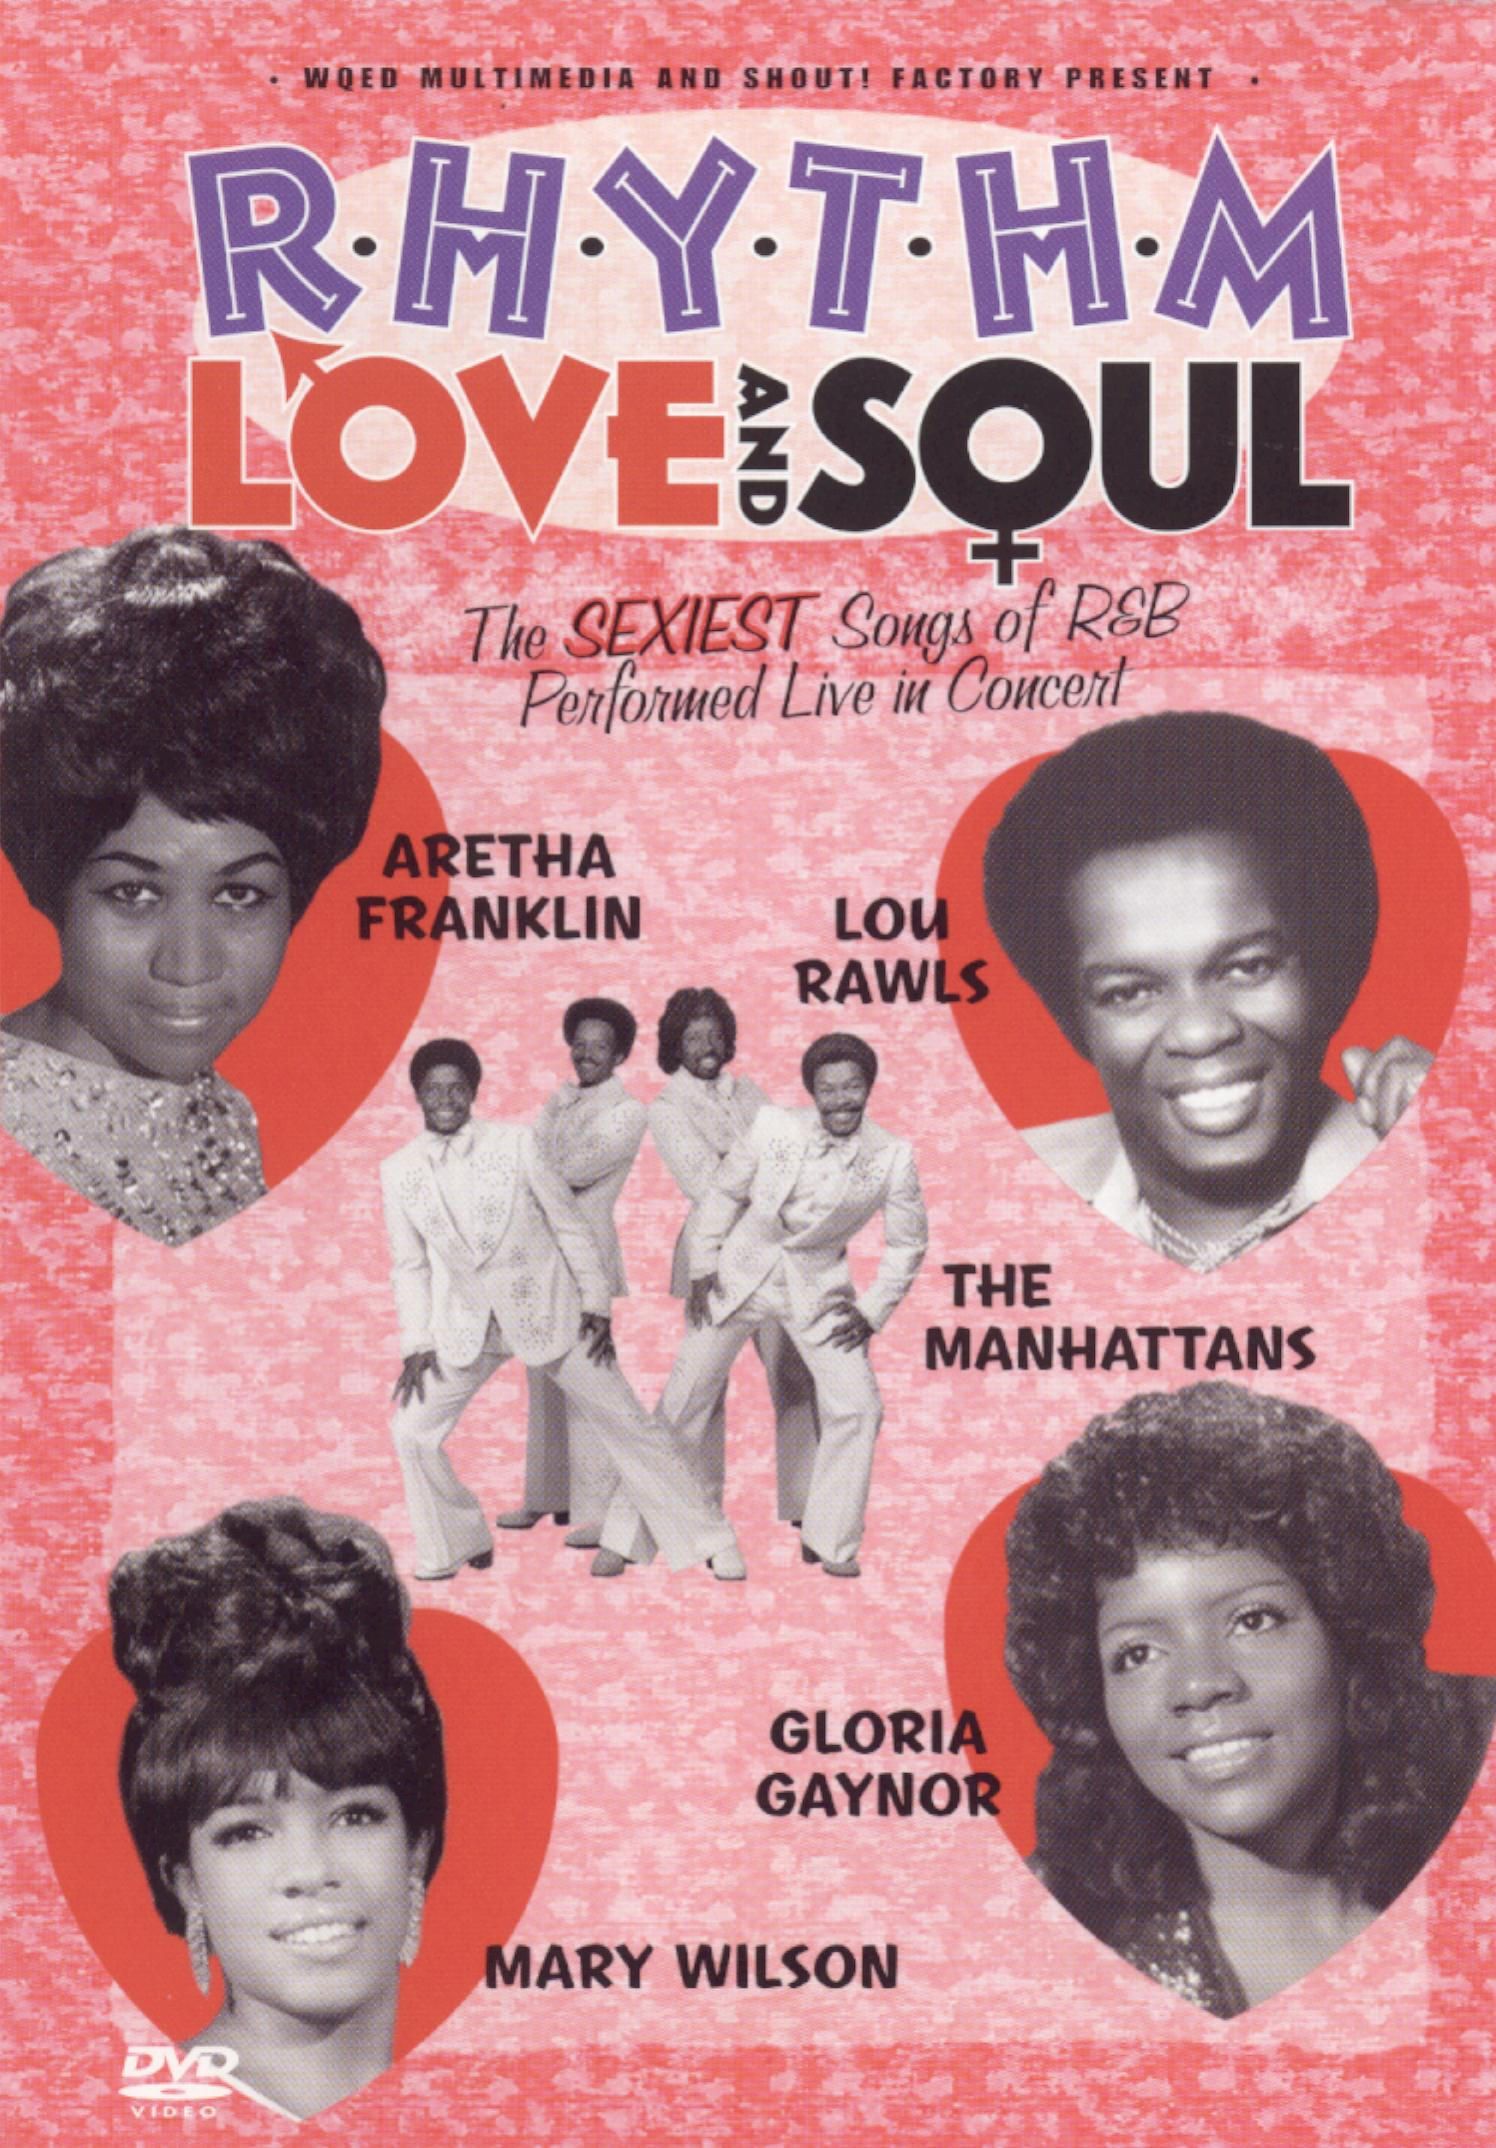 Rhythm, Love & Soul: The Sexiest Songs of R&B Performed Live, Vol. 1